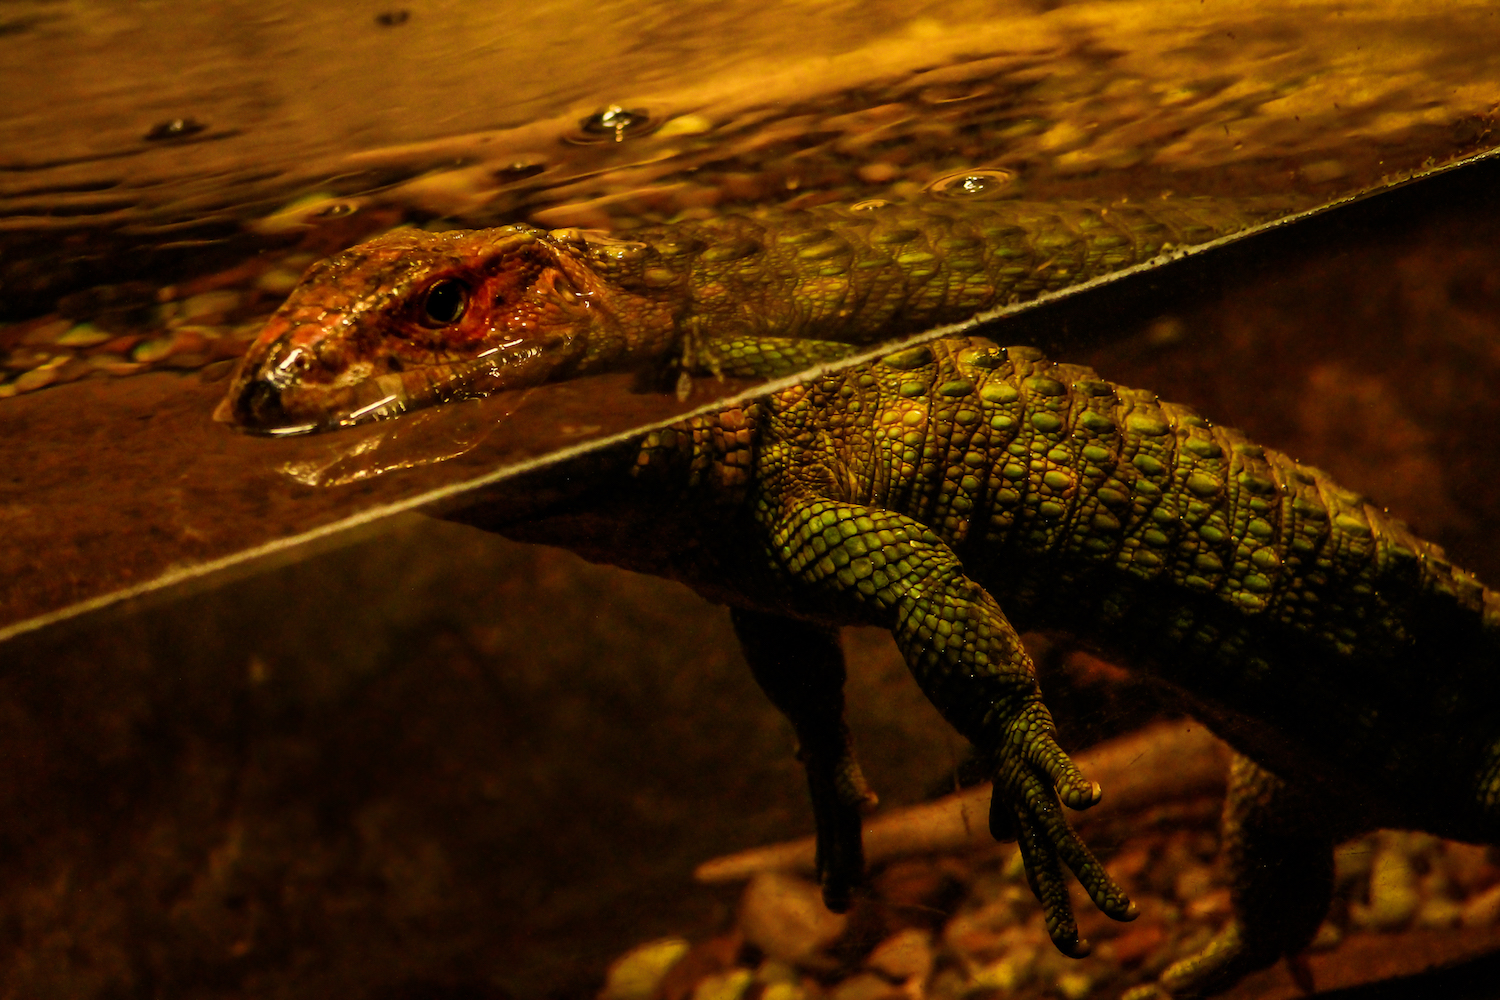 Caiman Lizard Swim, Atlanta Zoo, Canon DSLR